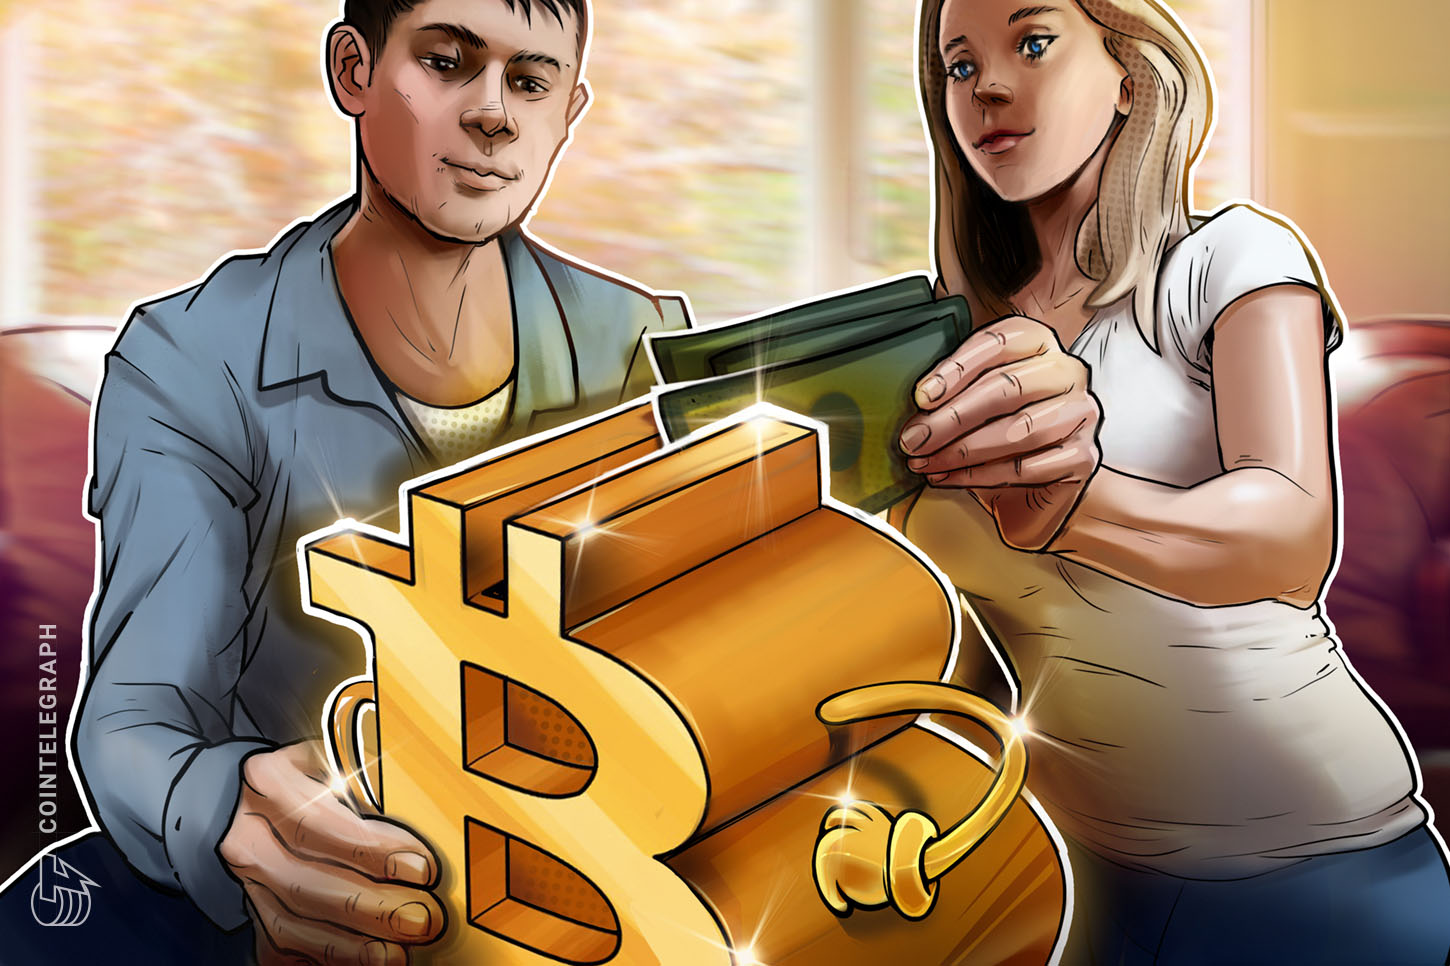 Second largest US mortgage lender will accept crypto payments this year